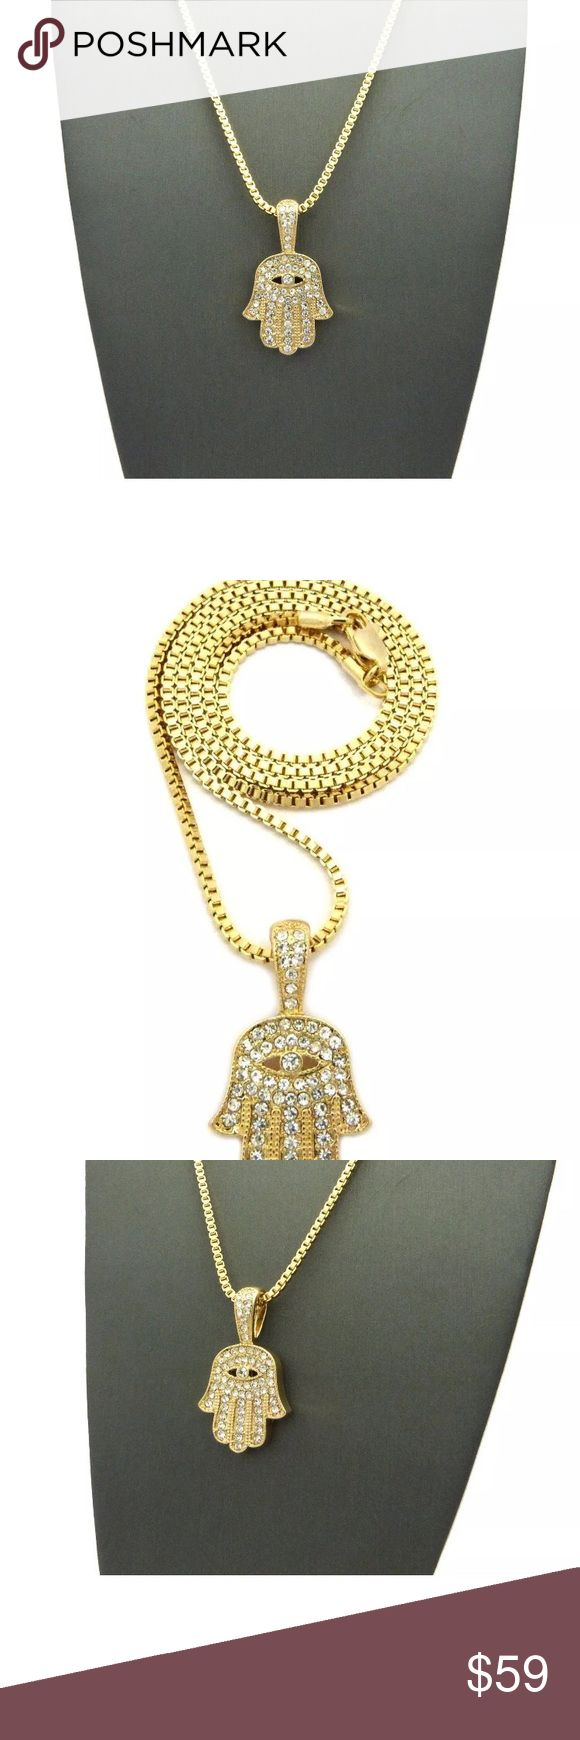 """HAMSA Micro Pave Palm Hand Pendant Gold Chain New Hip Hop Iced Pave Micro Hamsa Palm Hand Pendant w/ 24"""" Box Chain Necklace Men's Women's Unisex  Brand New   Hip Hop Celebrity Style Pendant & Chain  SIZE OF PENDANT: 0.8"""" X 1.45""""  CHAIN LENGTH:  2MM 24"""" BOX CHAIN  14K GOLD PLATED and MICRO PAVED DIAMONDS  High Quality & Polished   Retail Price : $139.99 Jewelry Necklaces"""